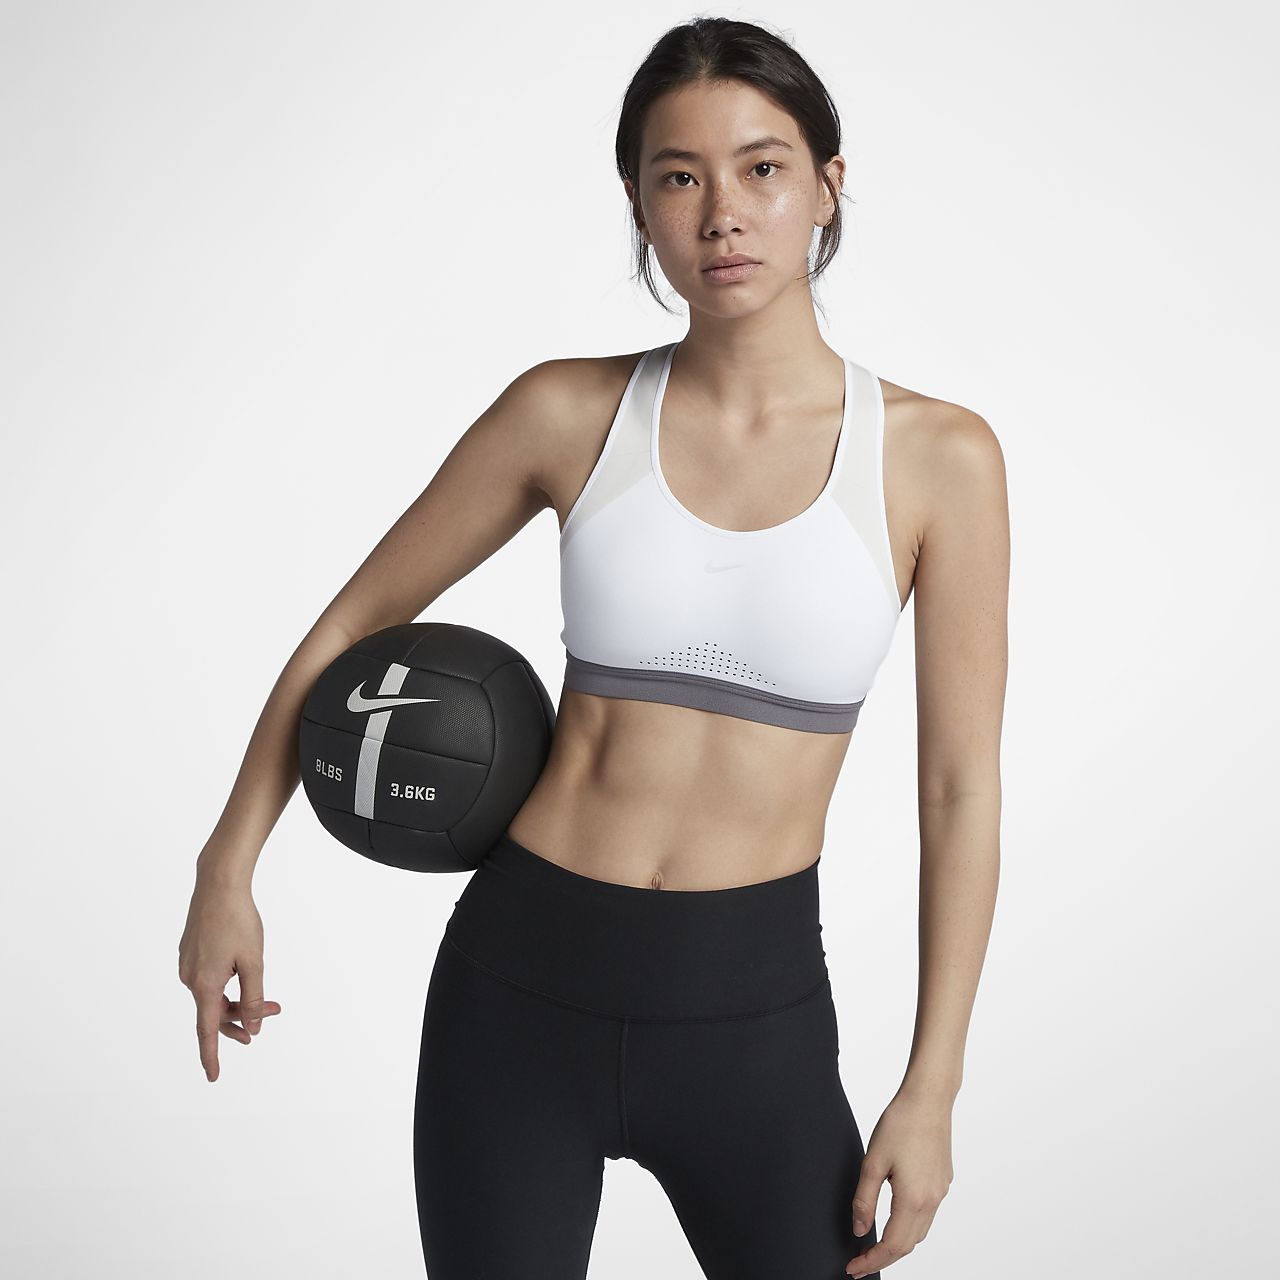 cf4763bdc2 Nike Motion Adapt Women s Sports Bra. Nike.com